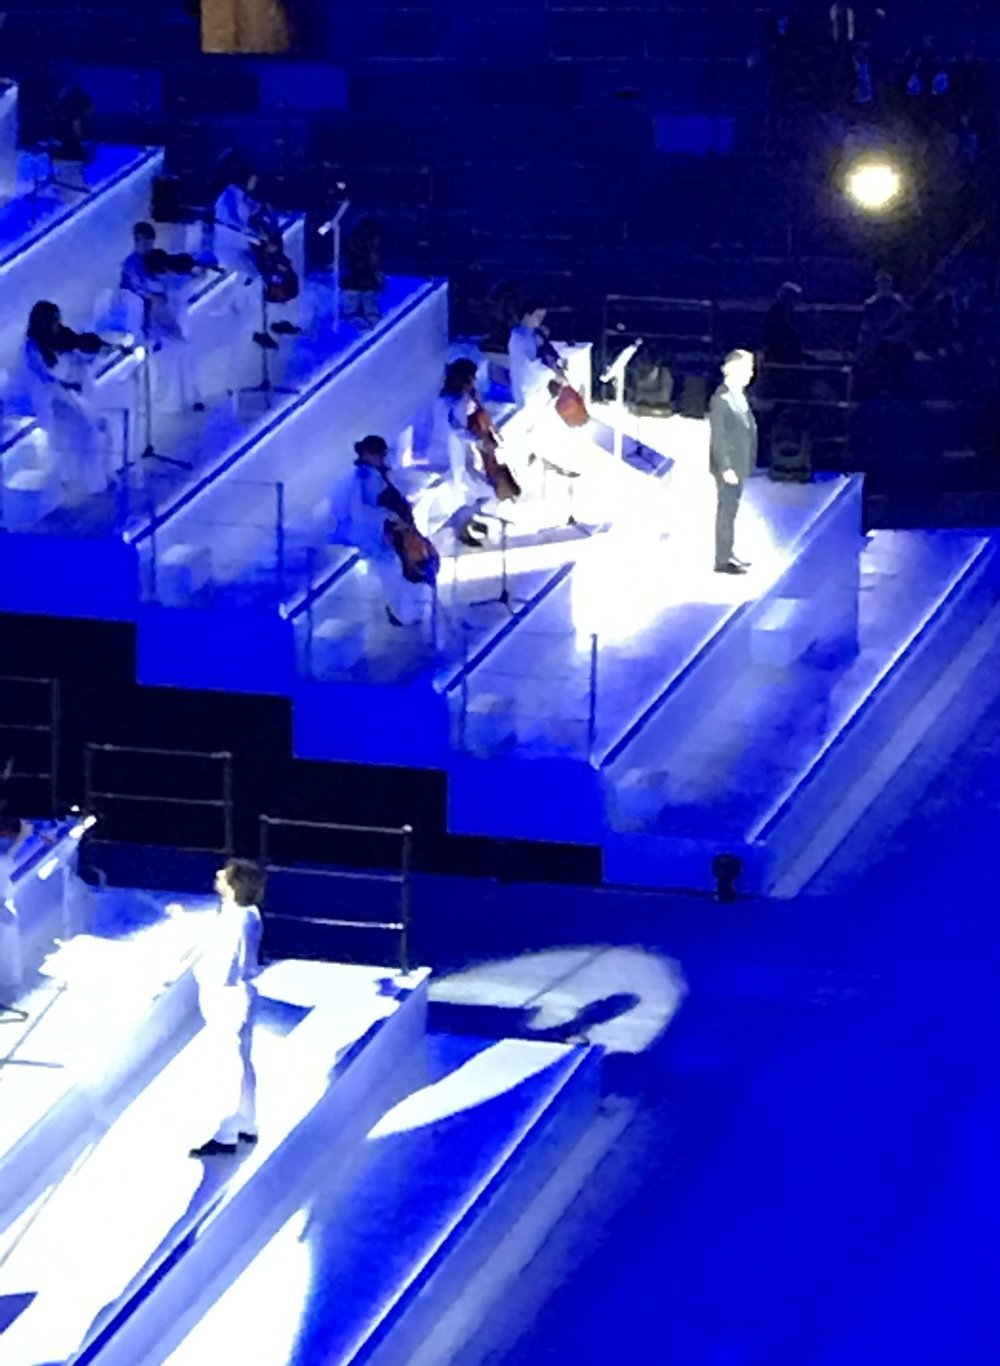 Andrea Bocelli was the special guest for the show (he can be seen at the top of the photo in the black suit).